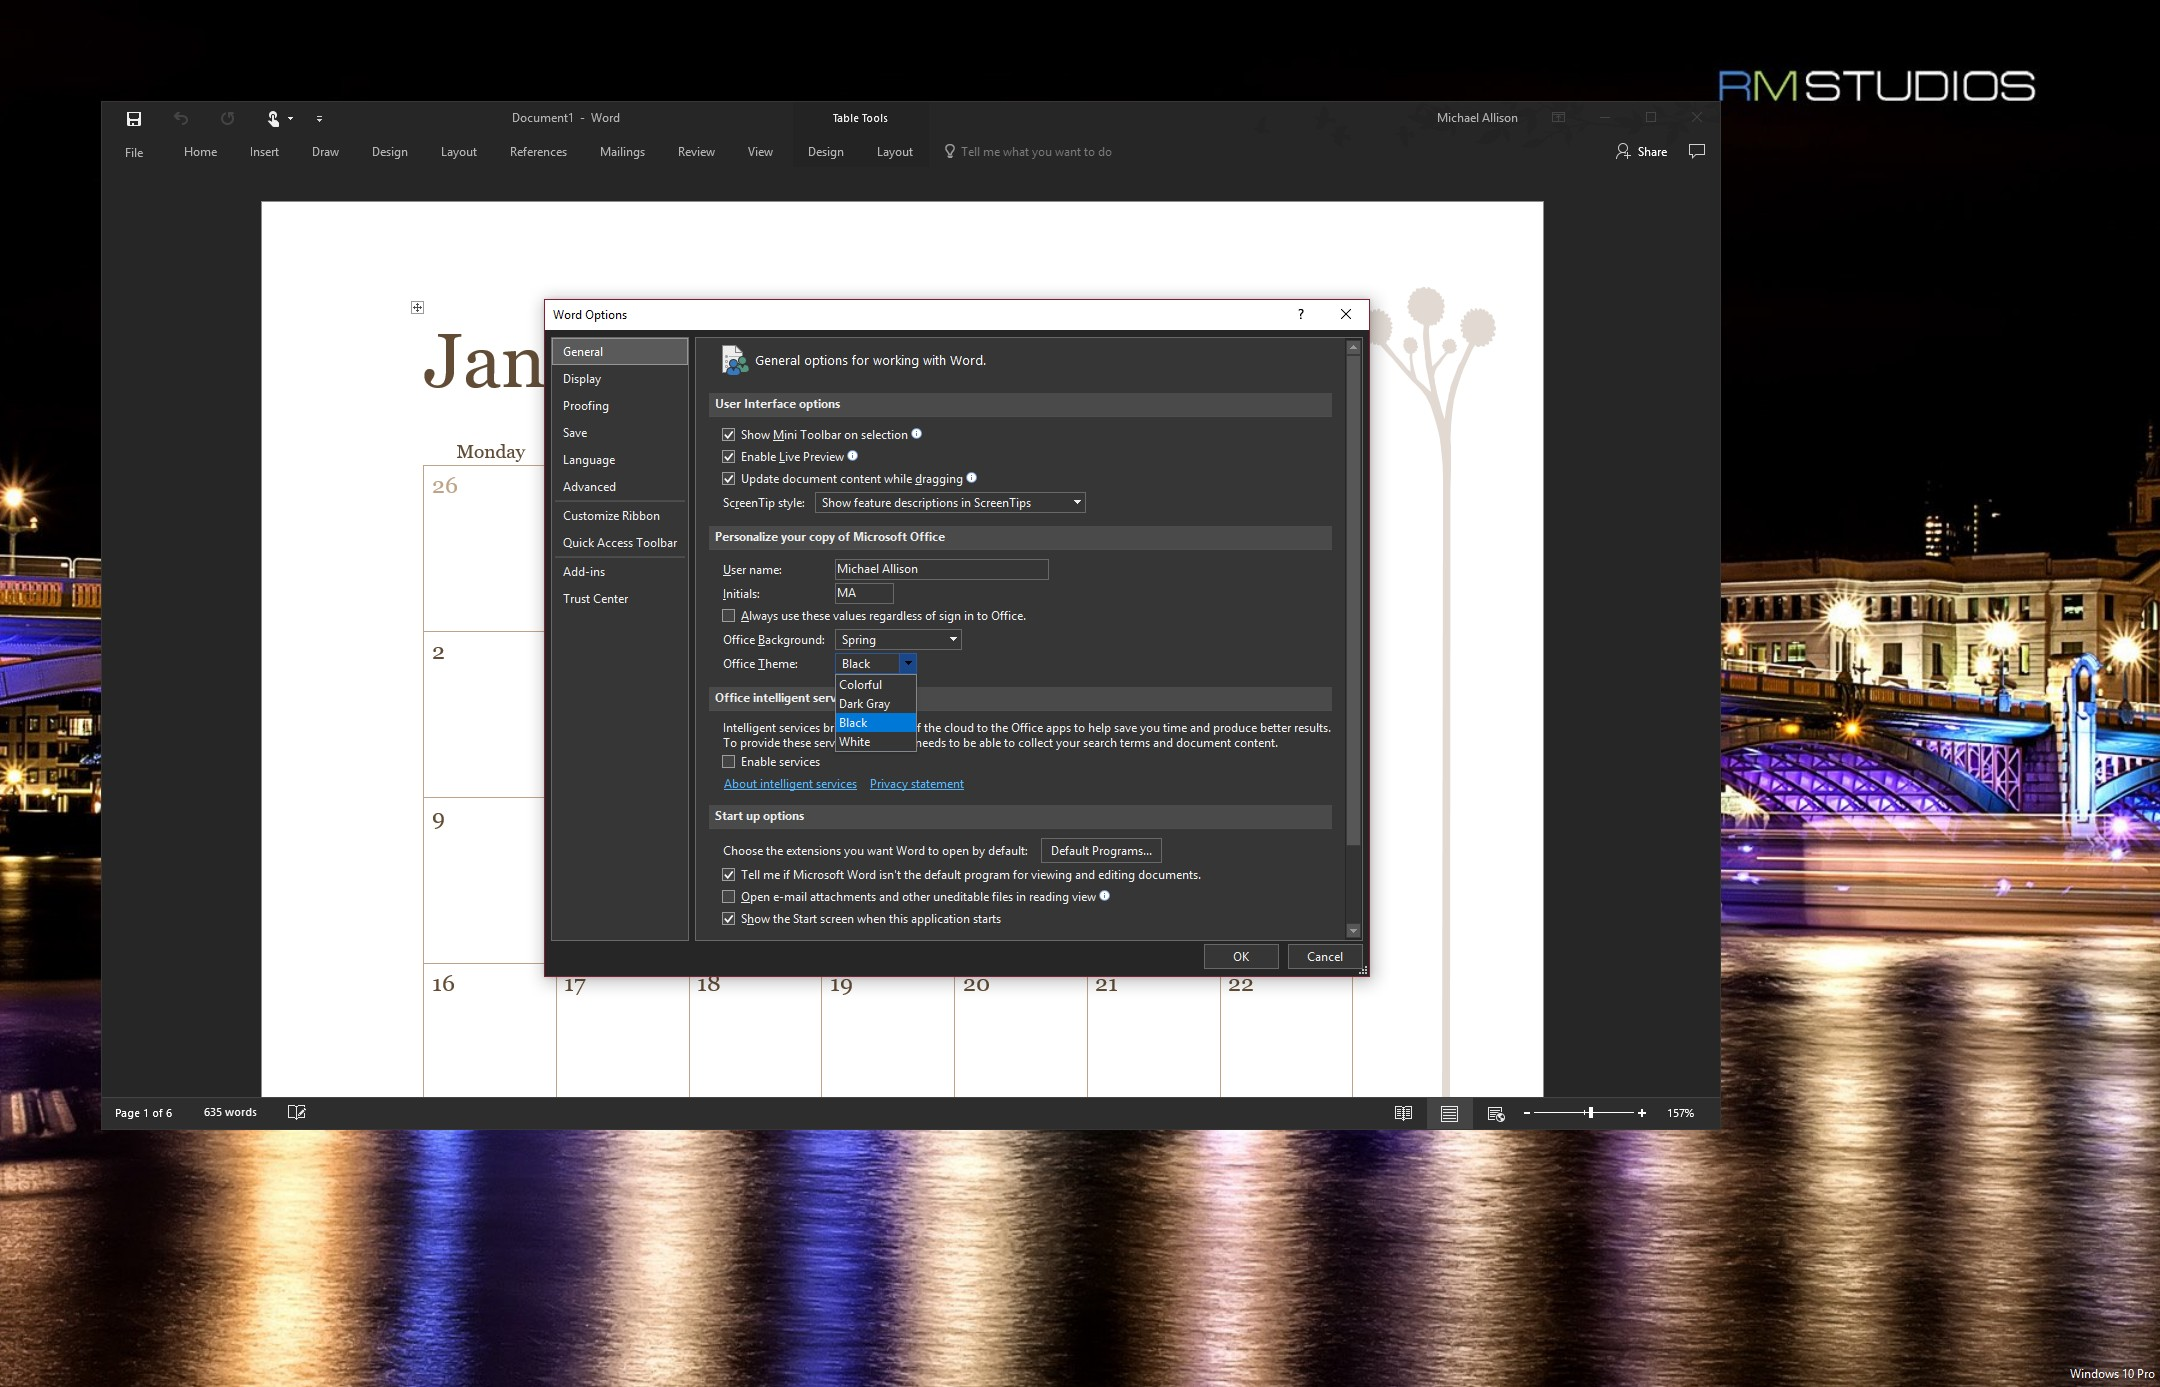 How to dark theme nearly everything in Windows 10 2